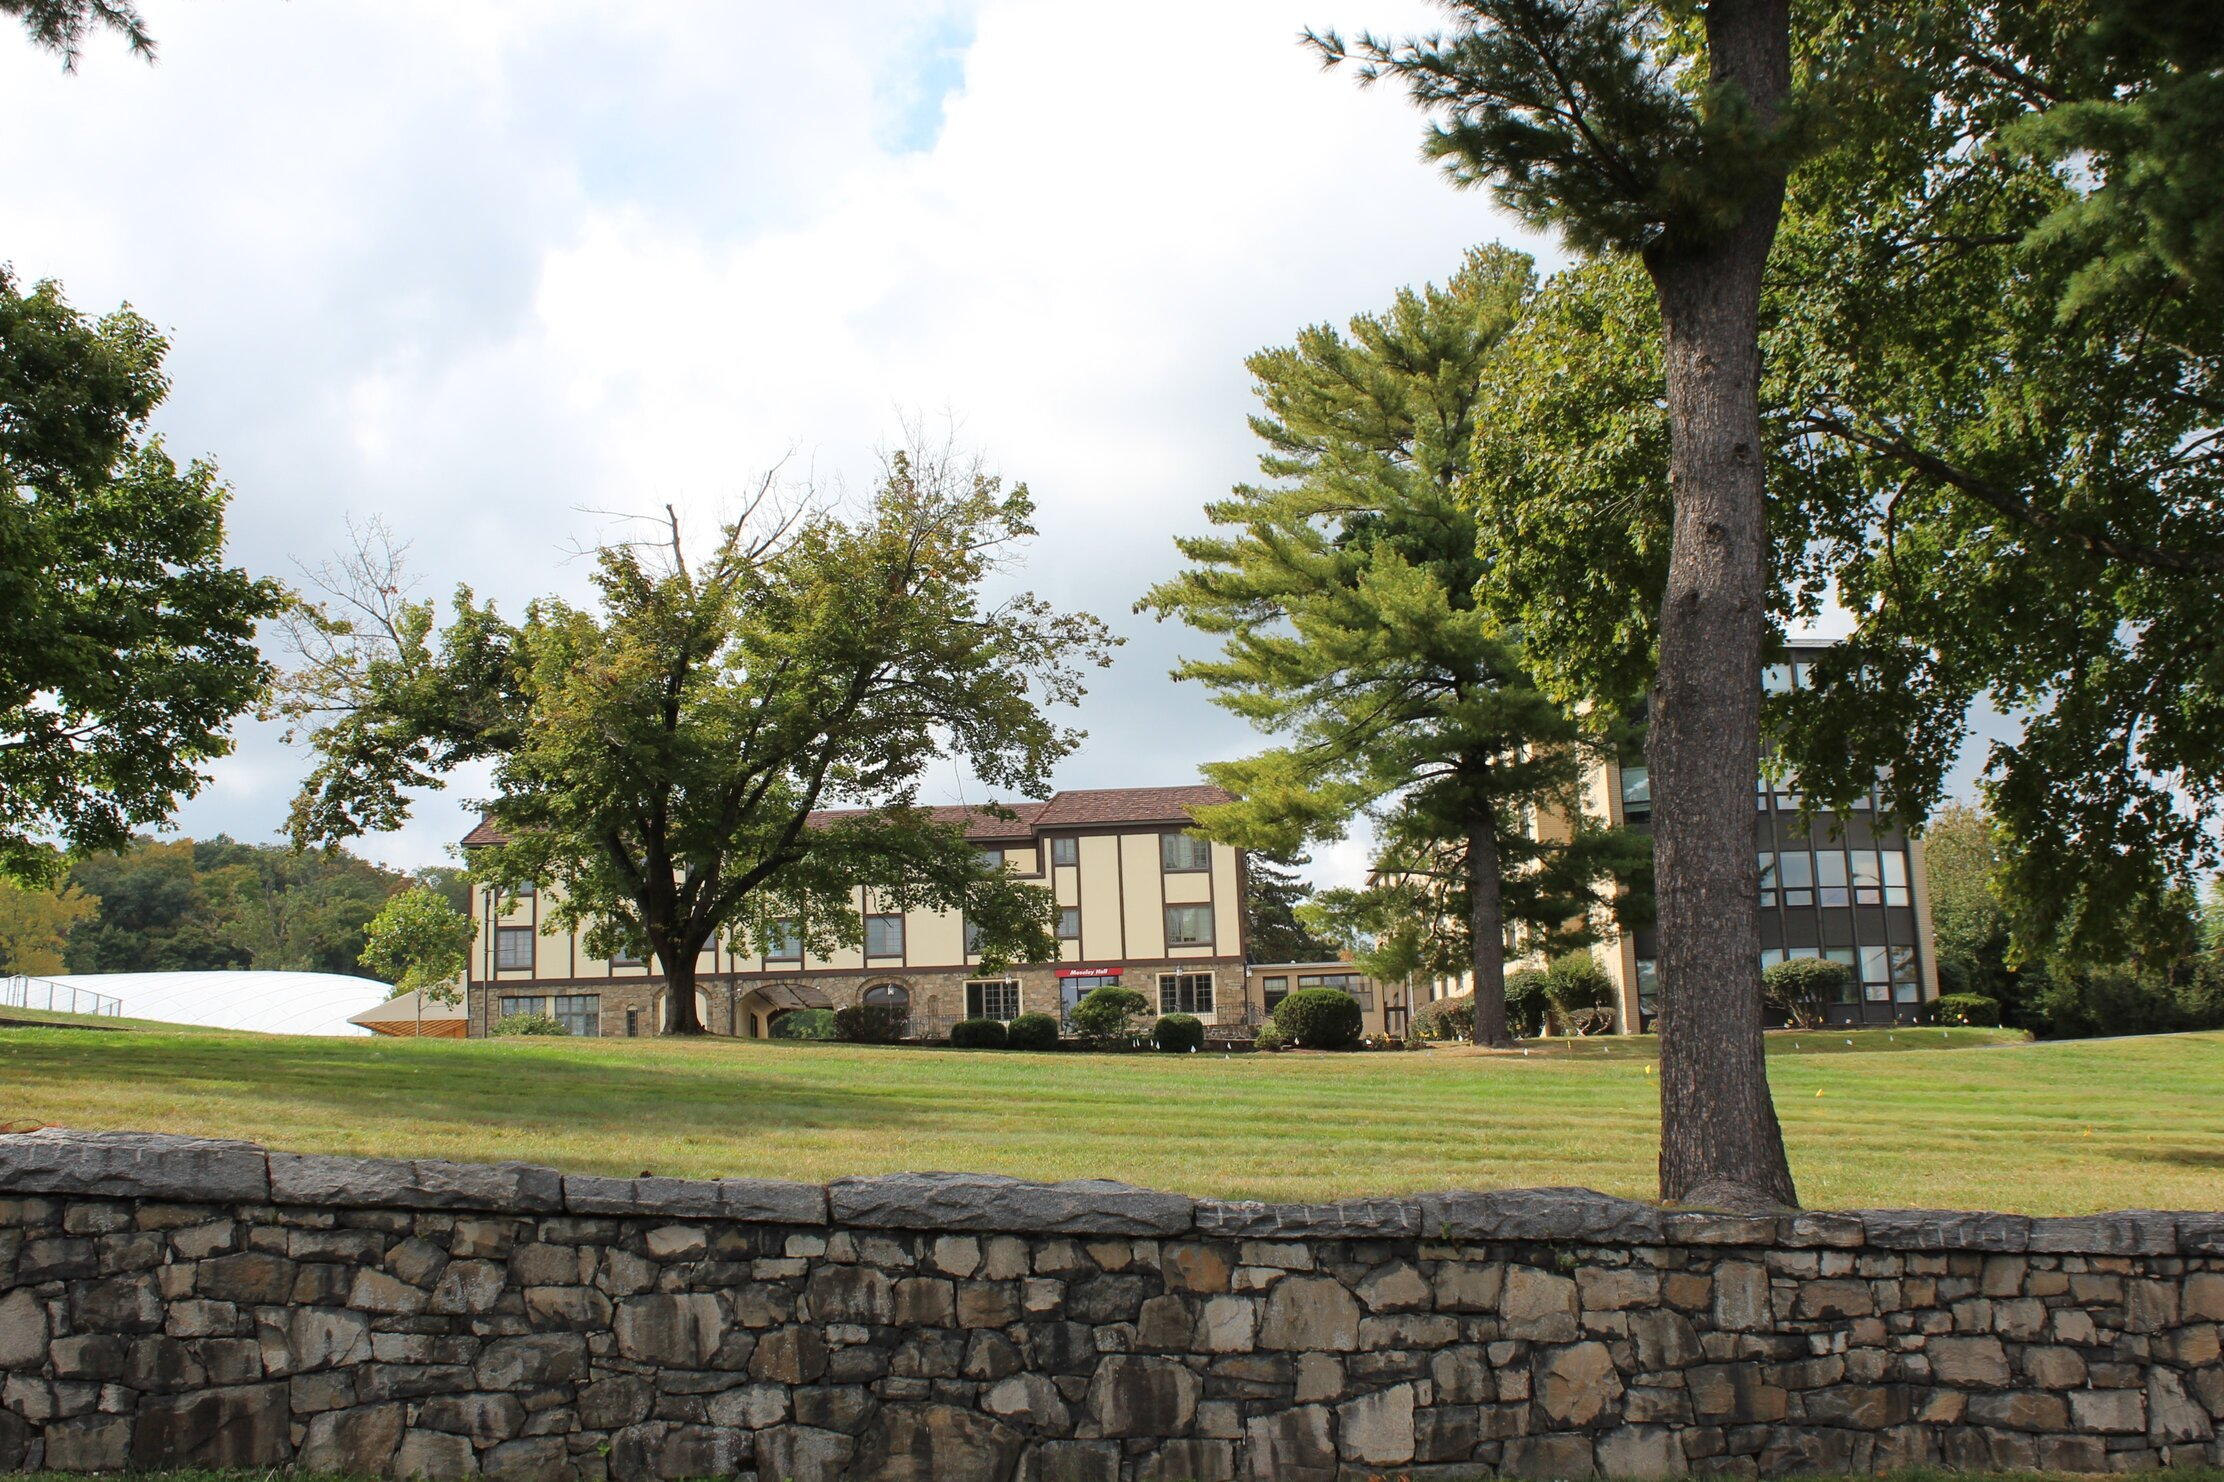 Vote to Dissolve Village of South Nyack Set for December 17